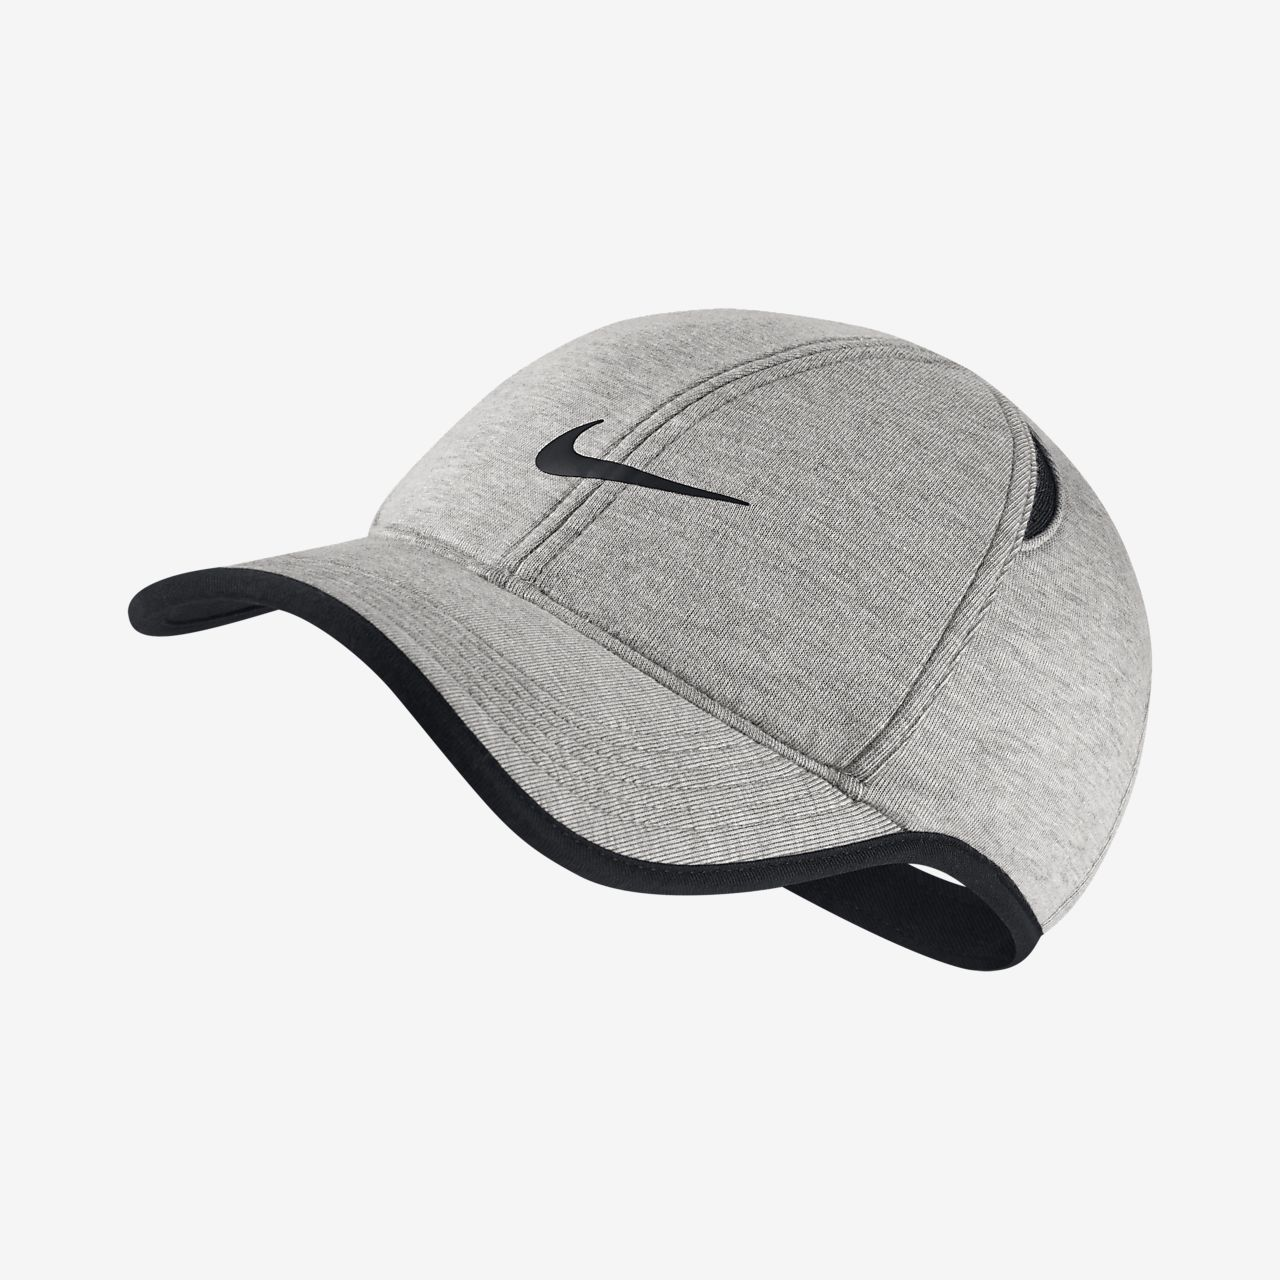 NikeCourt AeroBill Featherlight Adjustable Tennis Hat. Nike.com 3725f0794b5f